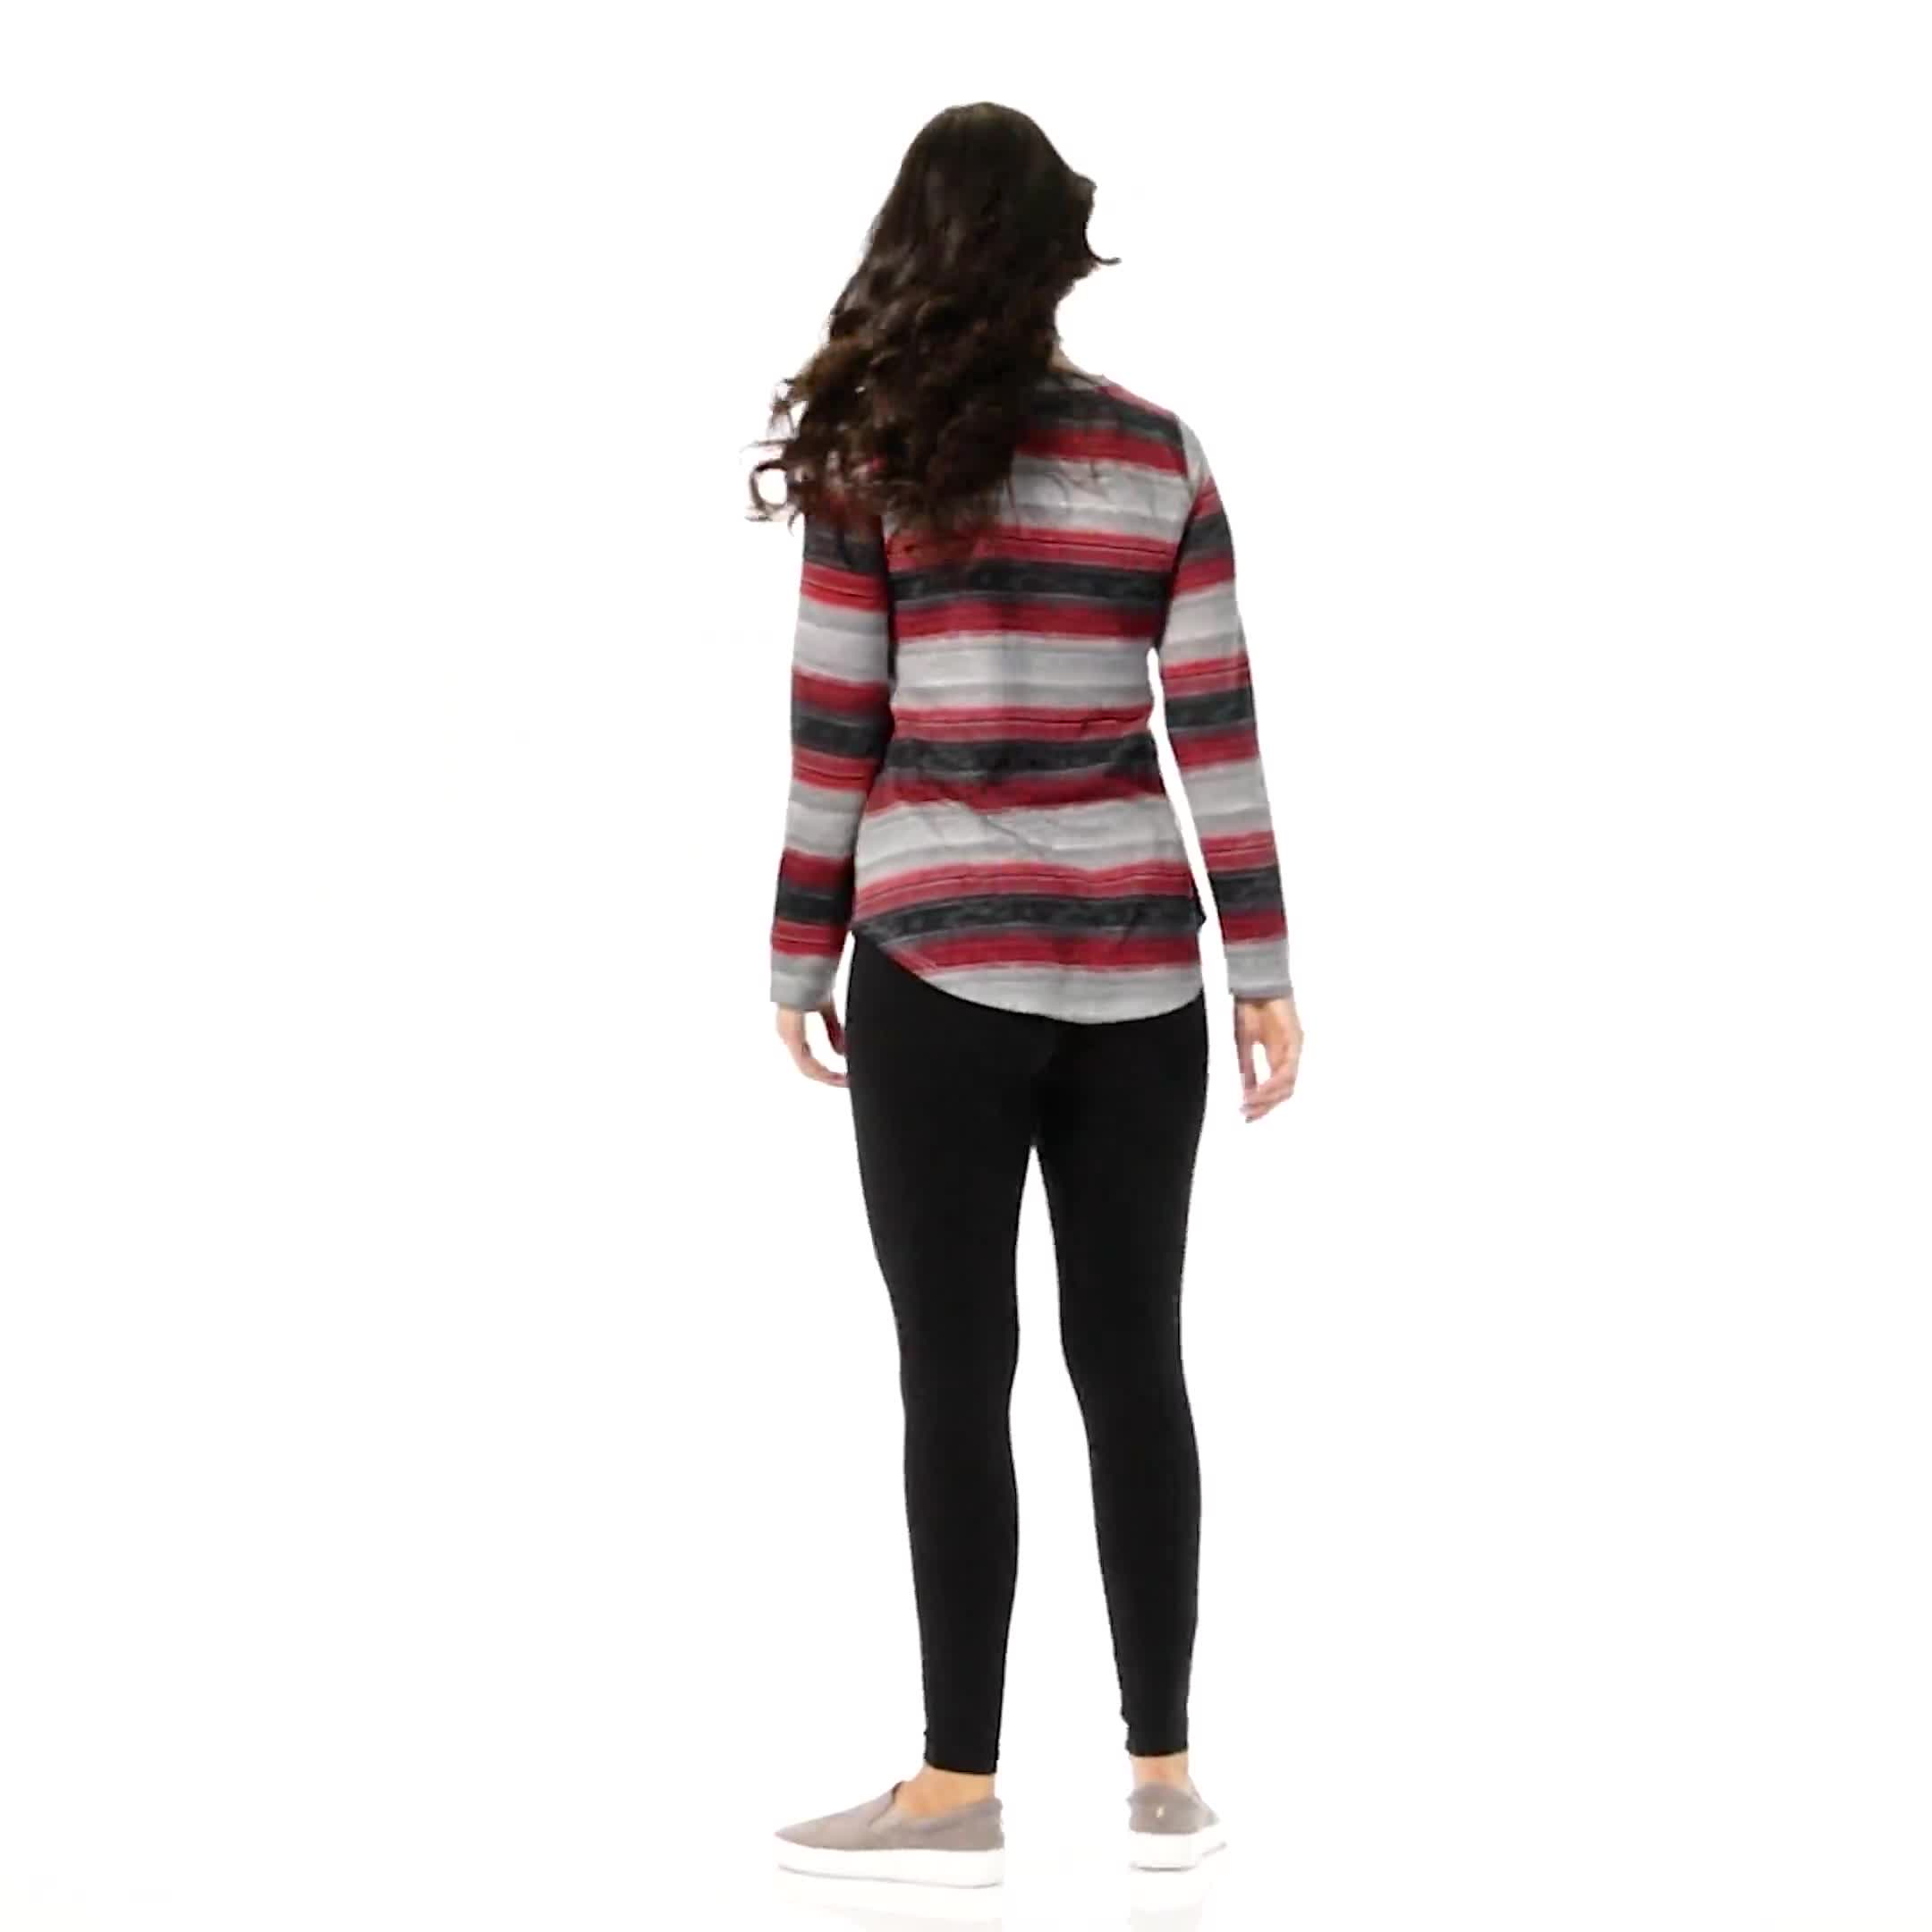 DB Sunday Lace Up Stripe Hacci Knit Top - Misses - Video